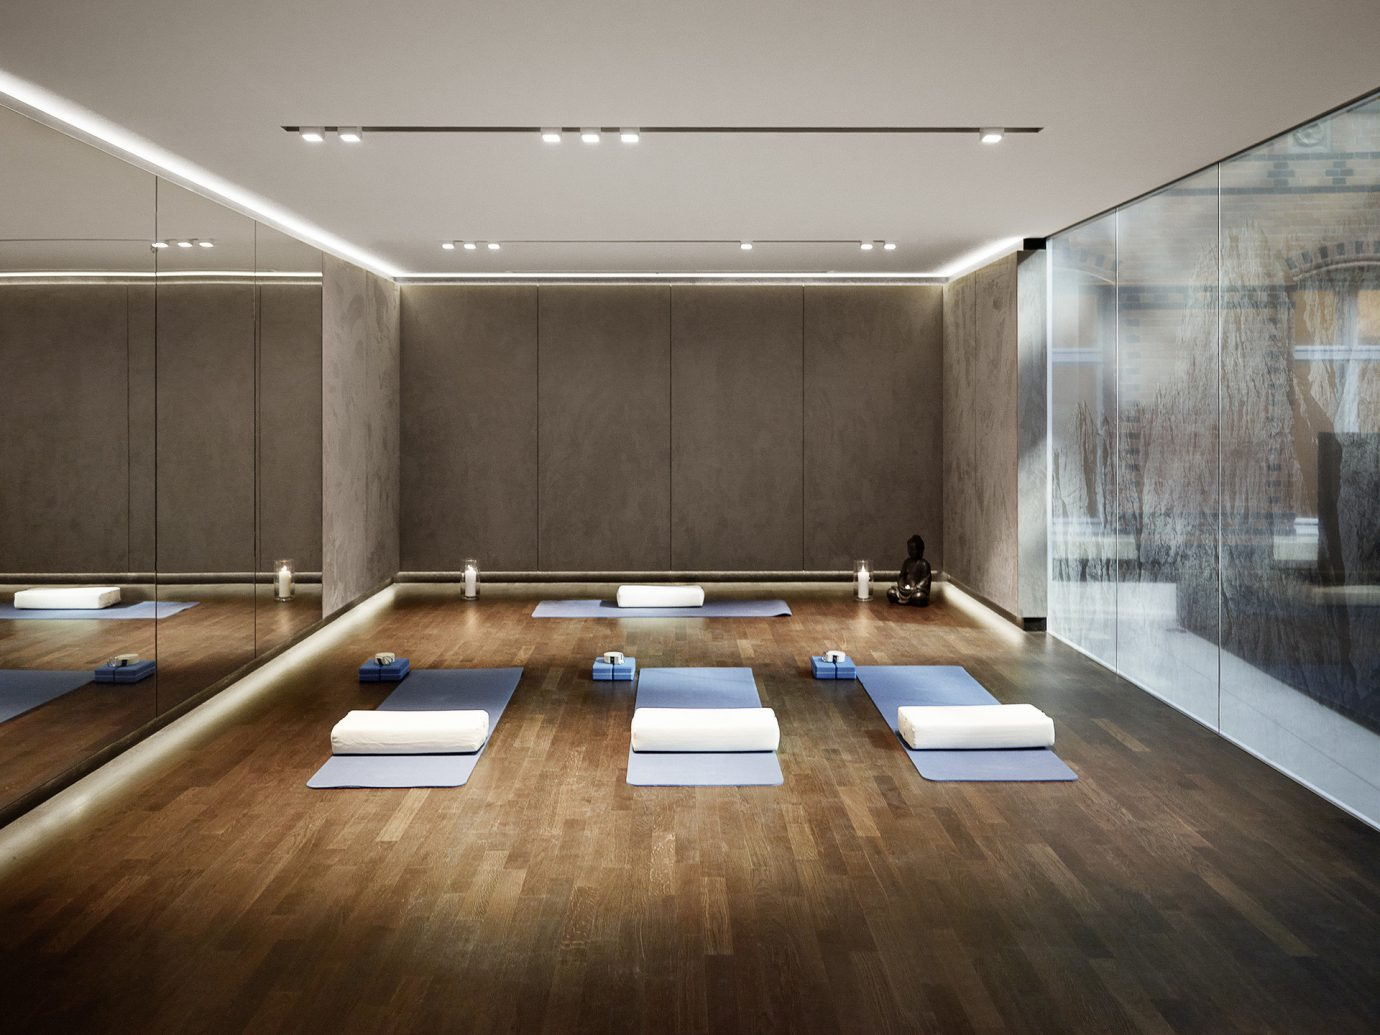 ambient lighting chic class clean Health + Wellness Hotels interior Luxury private relaxation Spa Retreats studio yoga indoor floor wall ceiling room interior design lighting recreation room Design wood flooring headquarters furniture Lobby